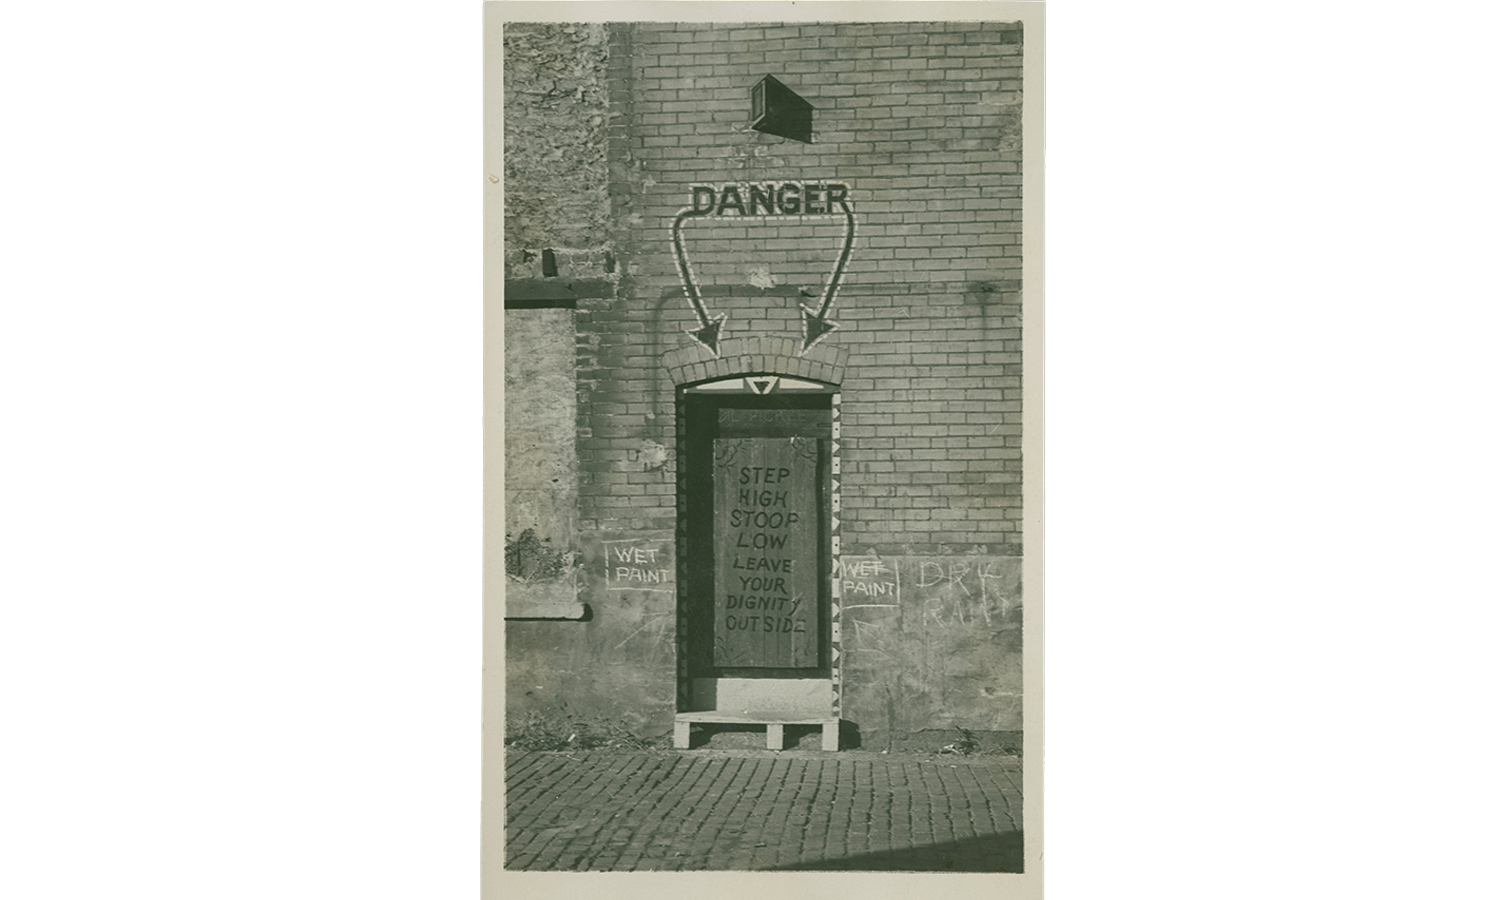 The Dill Pickle became known for its entryway, which added to its mystique. The alley's orange door was marked by a green light and inscribed with the phrase 'Step High, Stoop Low, Leave Your Dignity Outside.' (Courtesy Newberry Library)